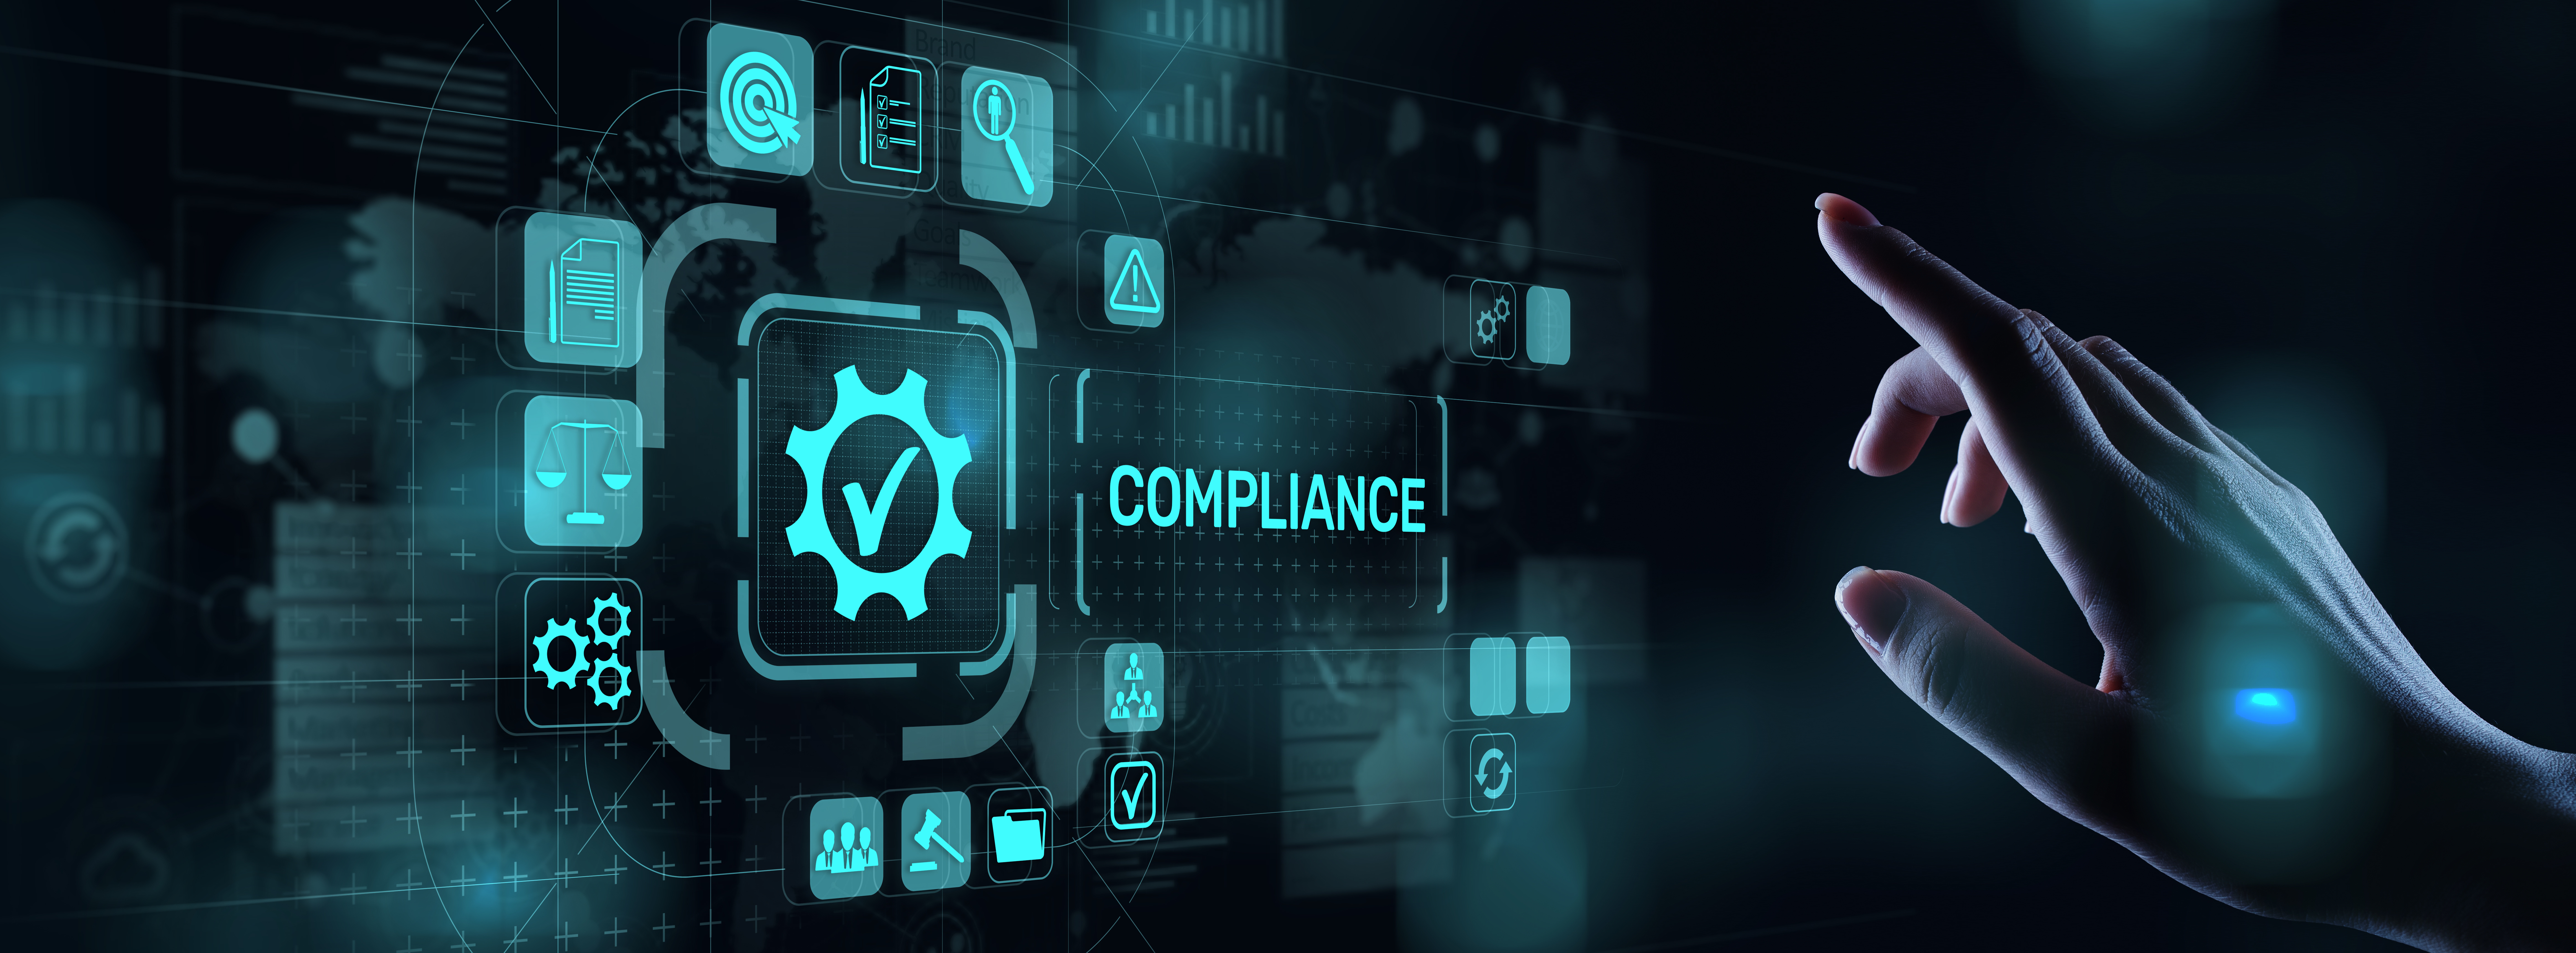 Compliance, quality and productivity